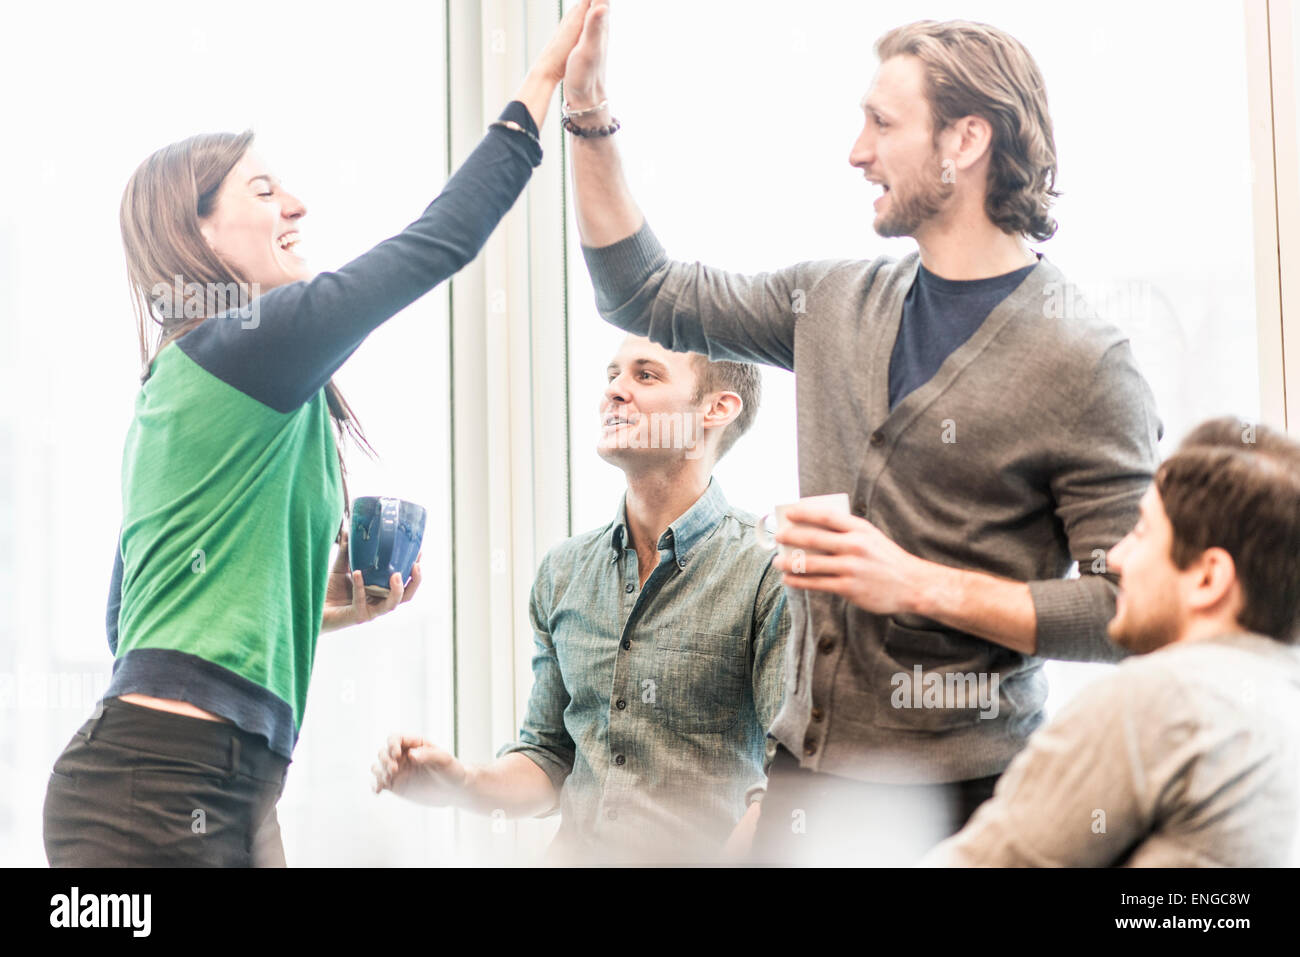 Four work colleagues on a break, laughing and sharing a high five gesture. - Stock Image